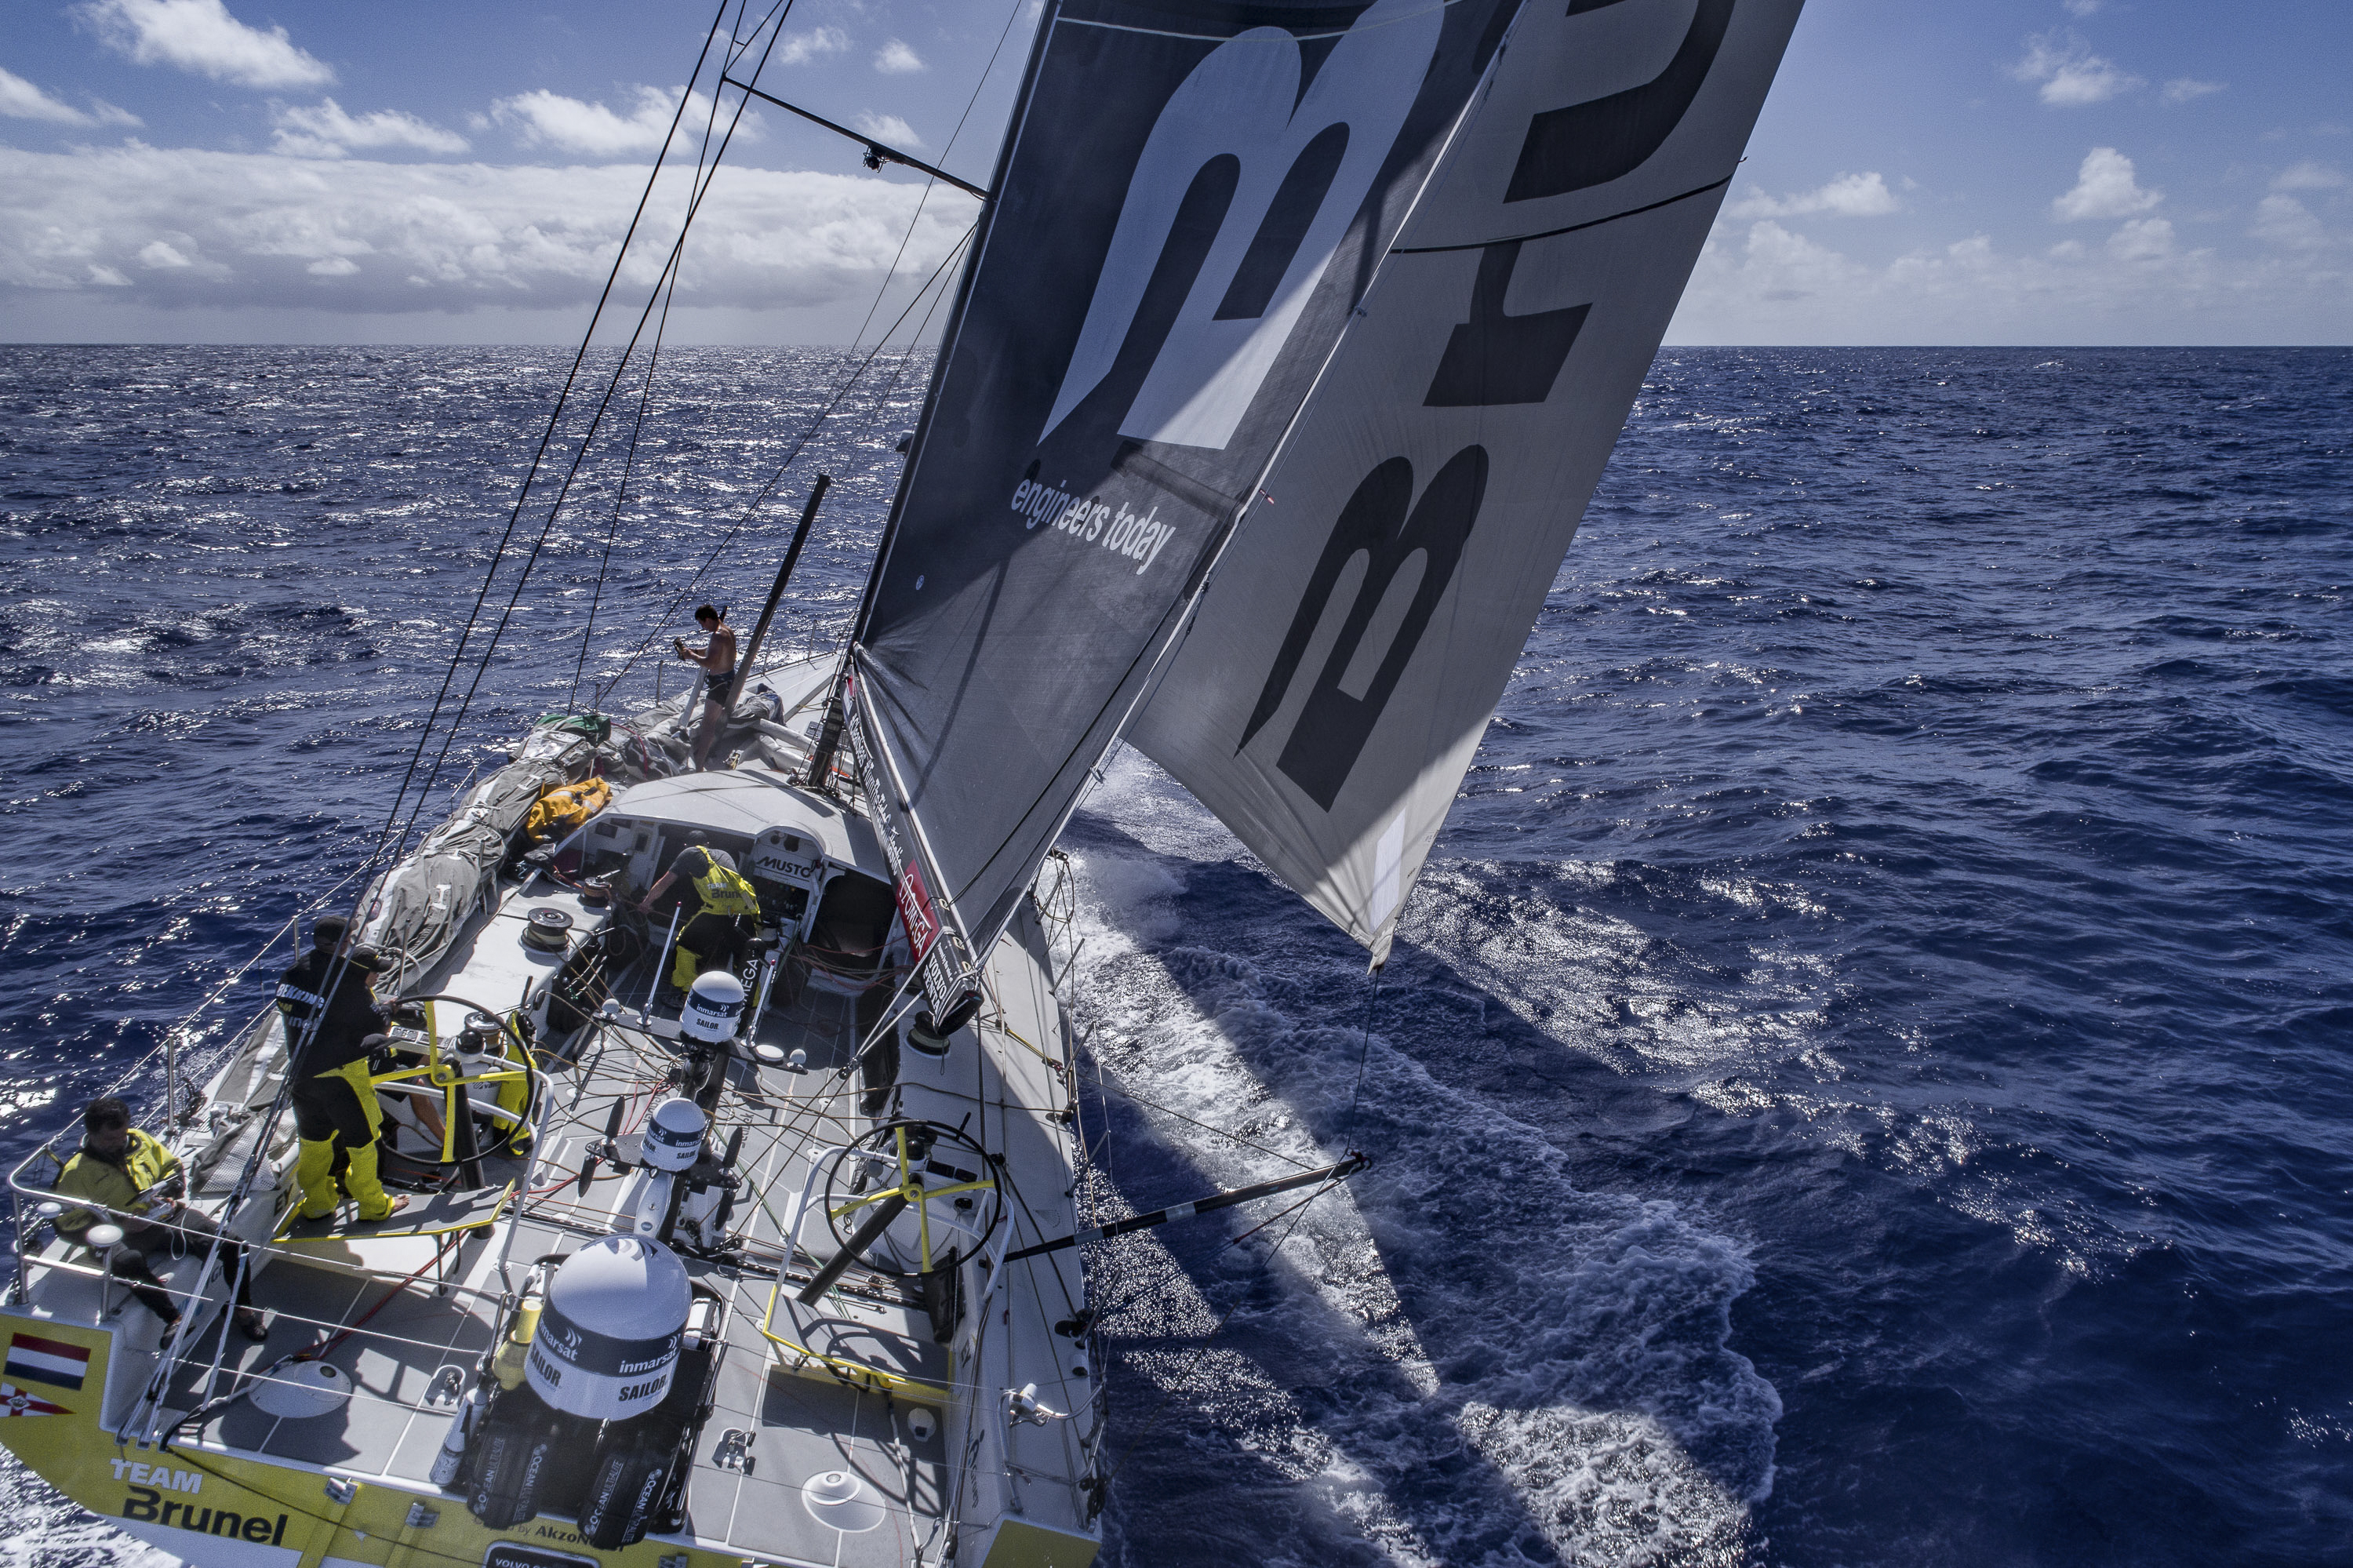 Leg 6 to Auckland, day 7 on board Team Brunel on Feb. 13, 2018.